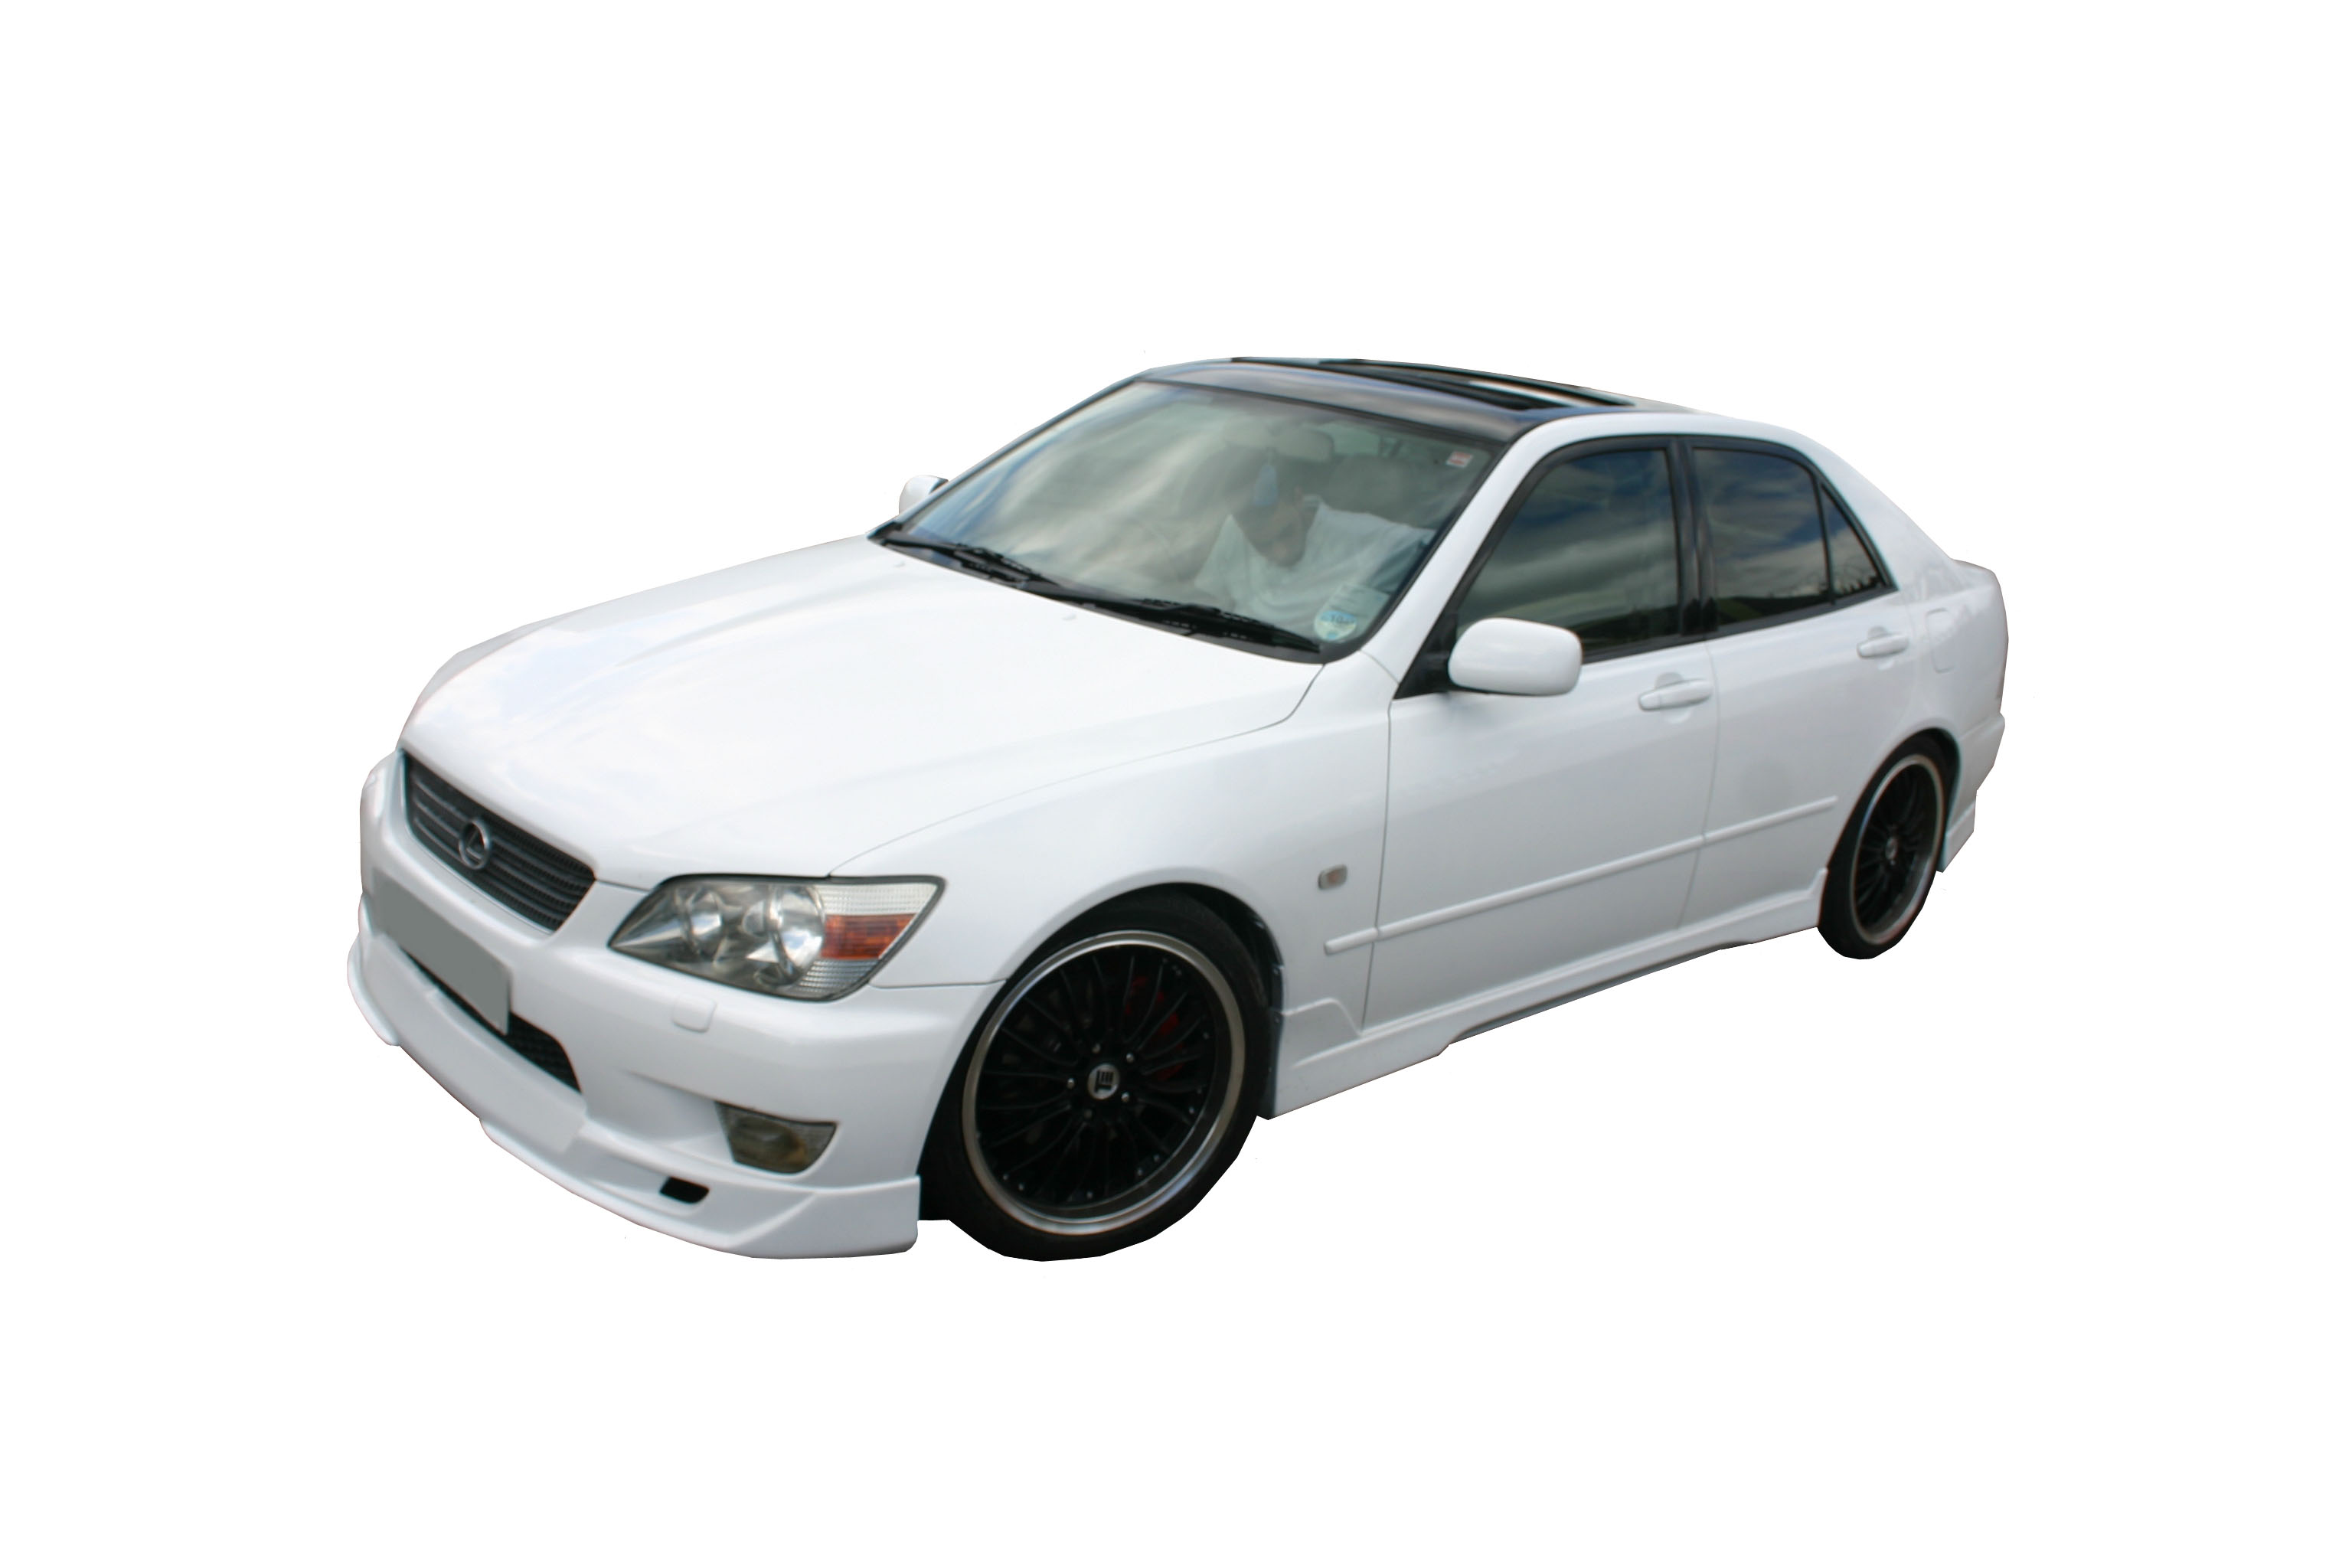 Lexus IS200 Body Kit - Build Your Own